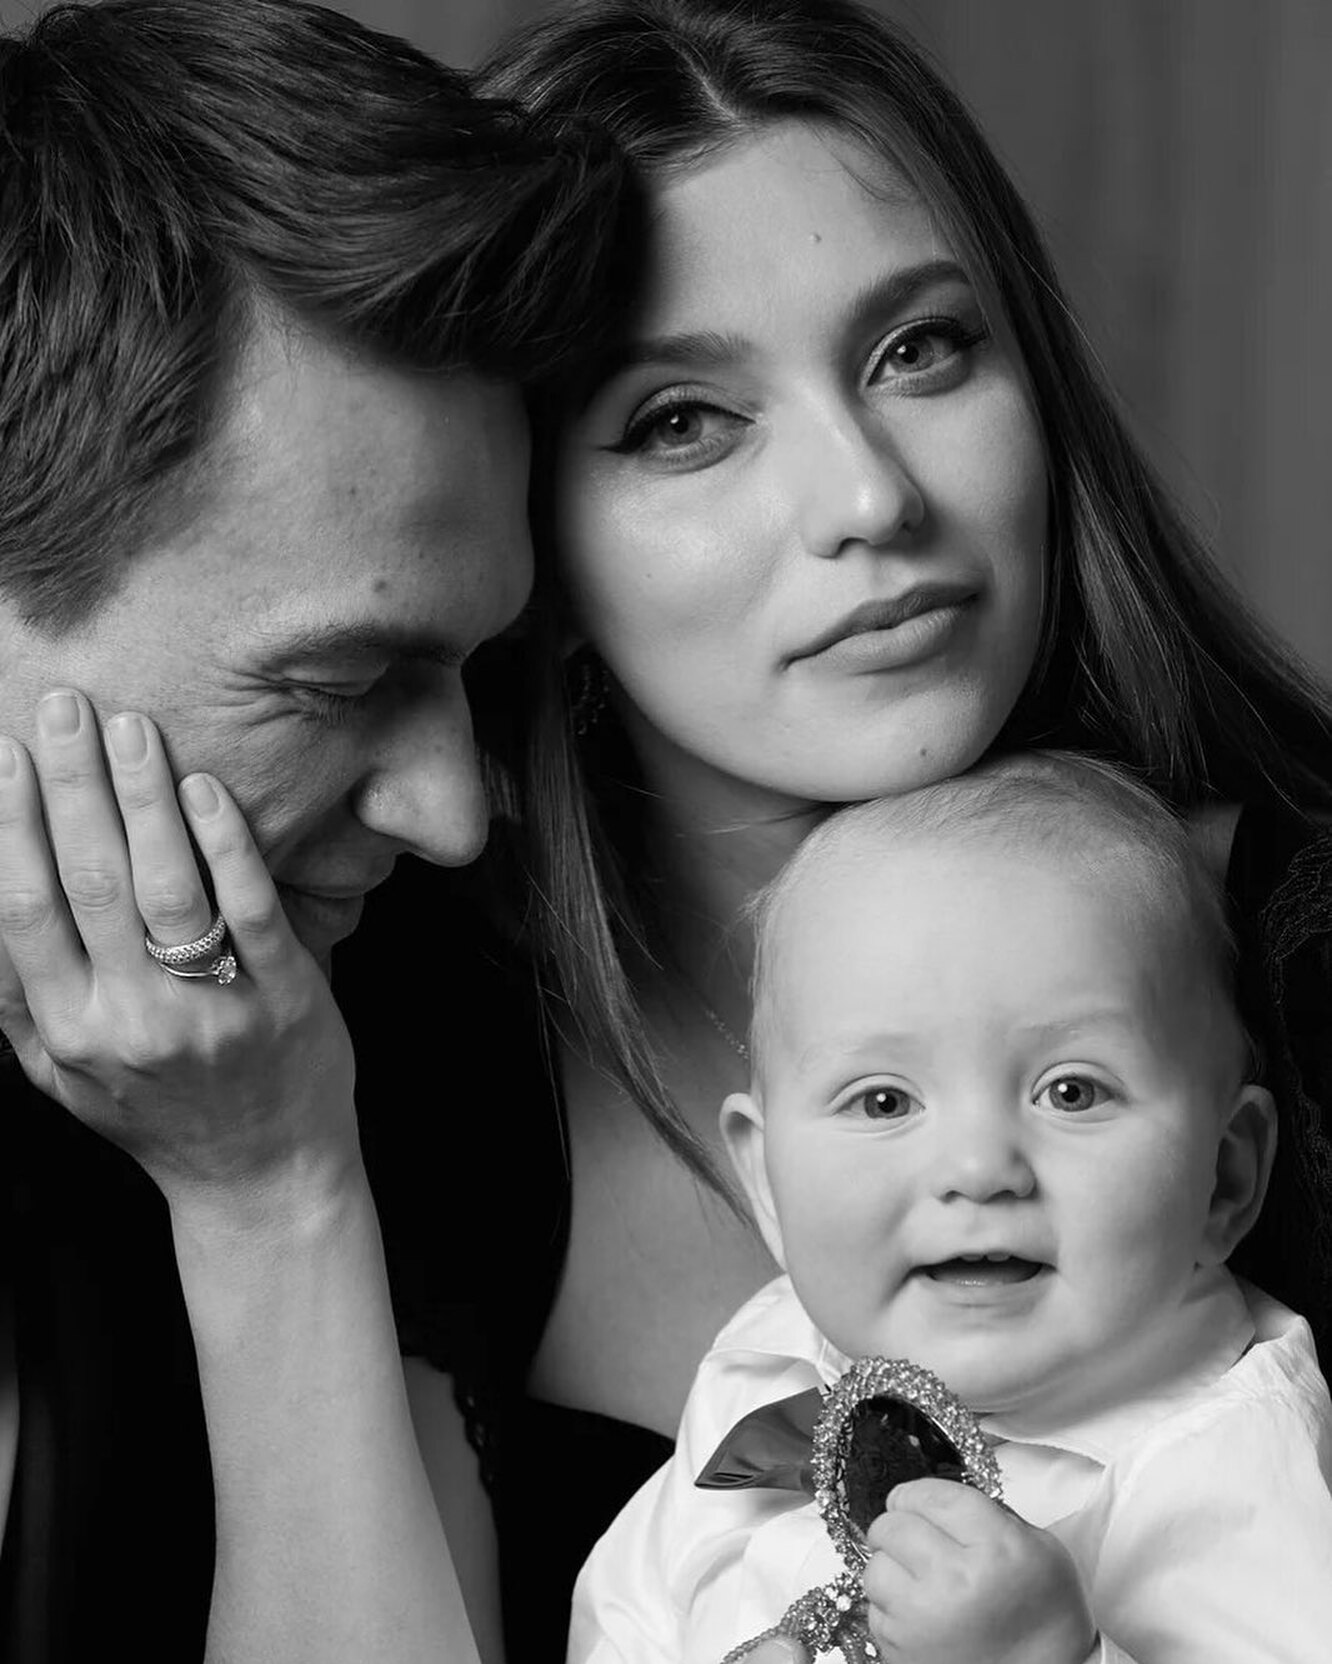 Vlad Topalov dedicated a song to his little son